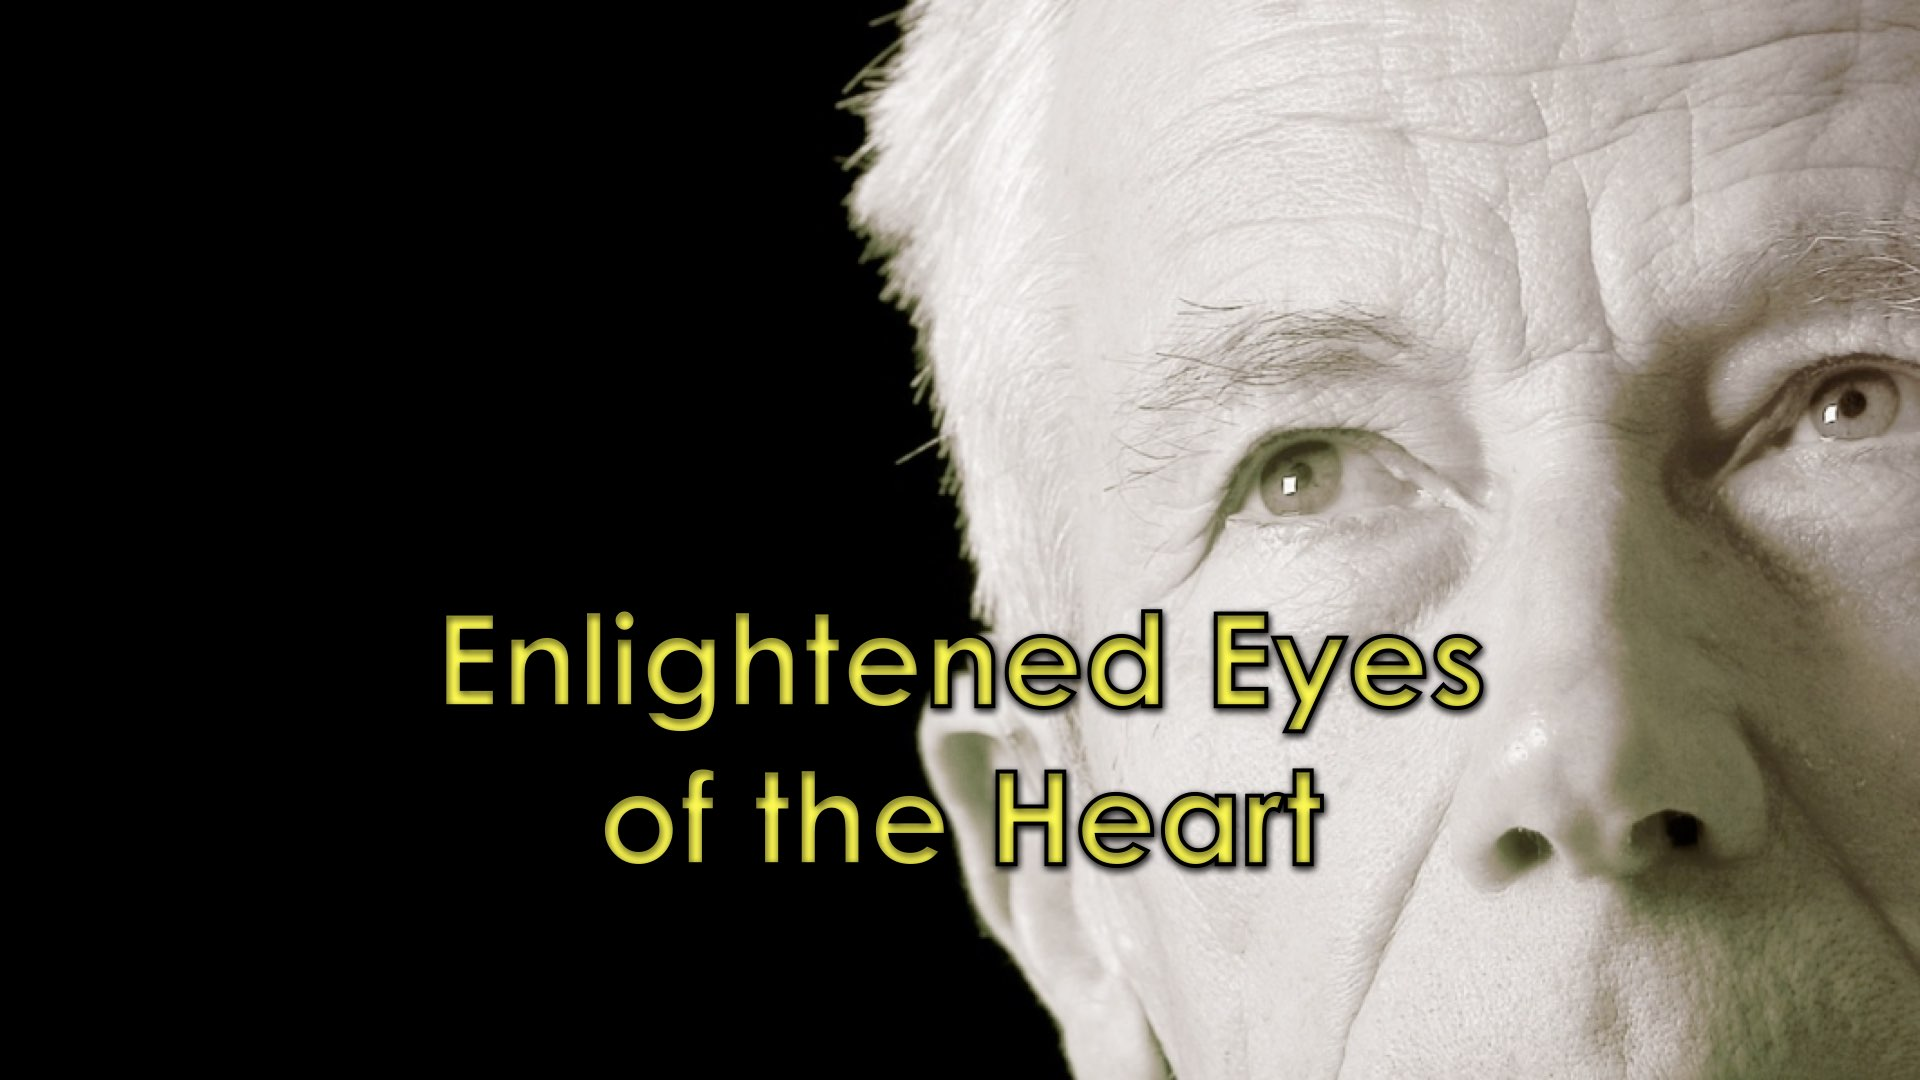 Enlightened Eyes of the Heart